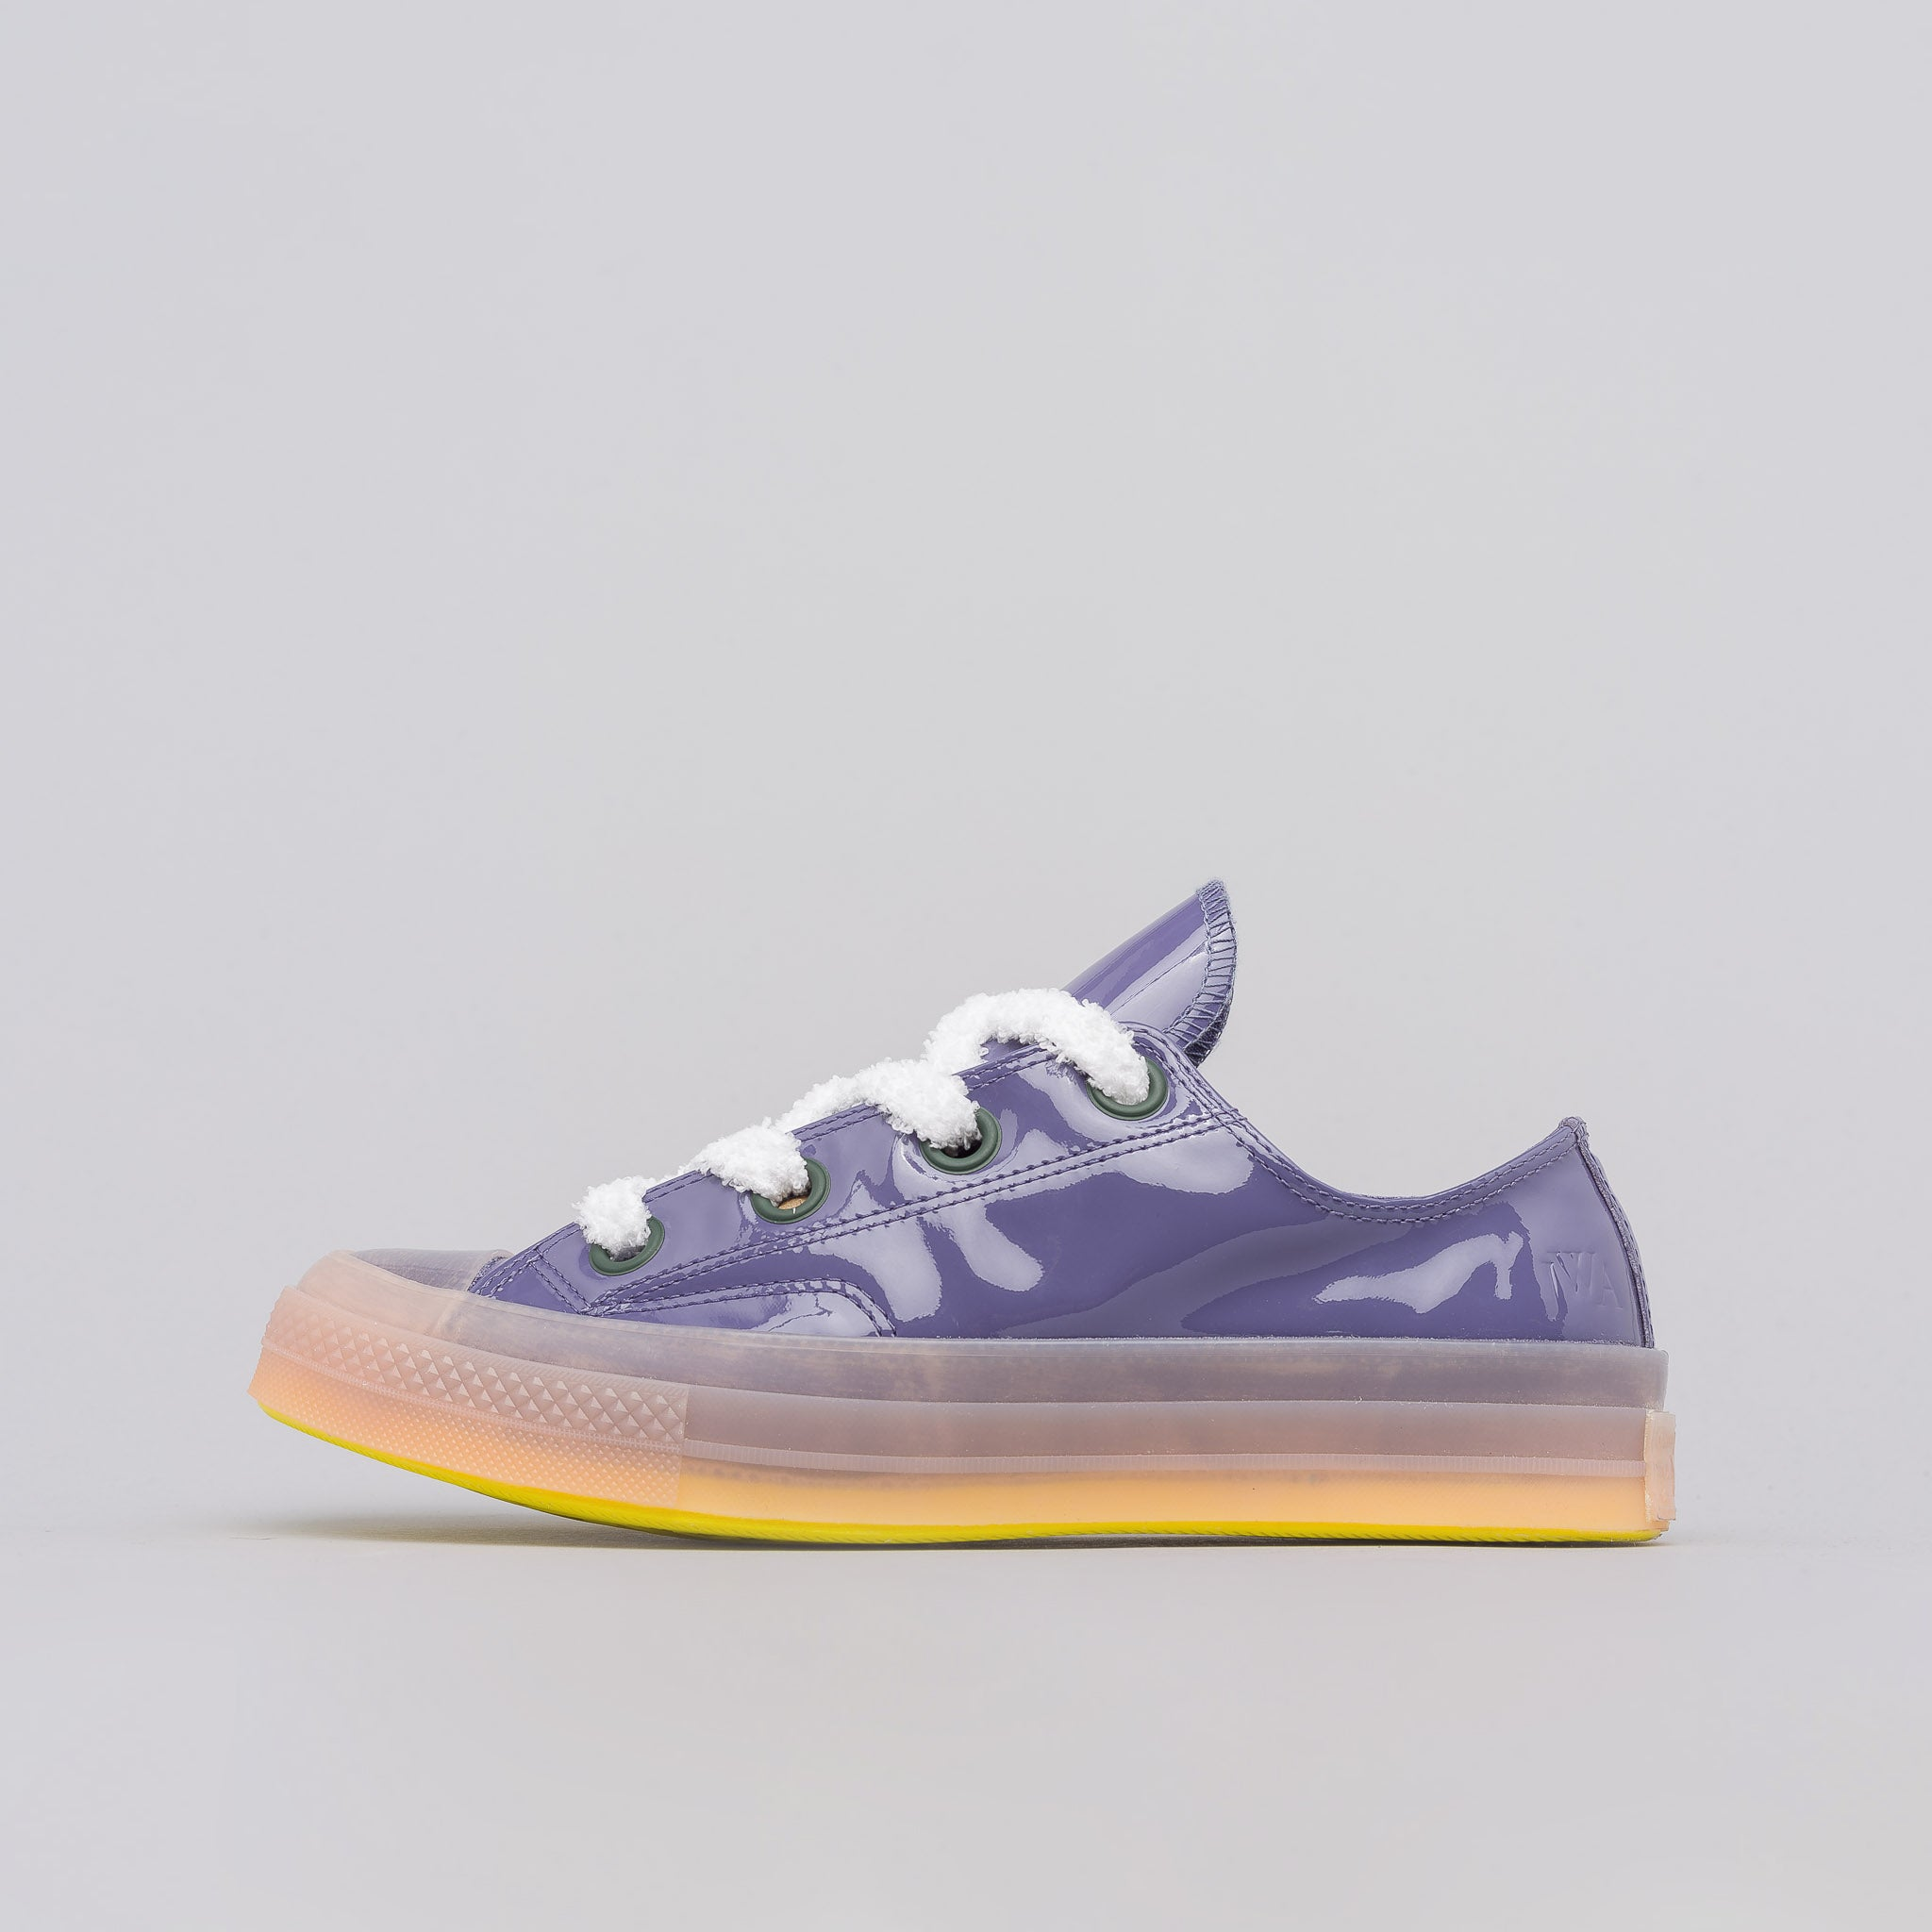 x JW Anderson Chuck 70 Big Eyelets Low Top in Heron/Coral